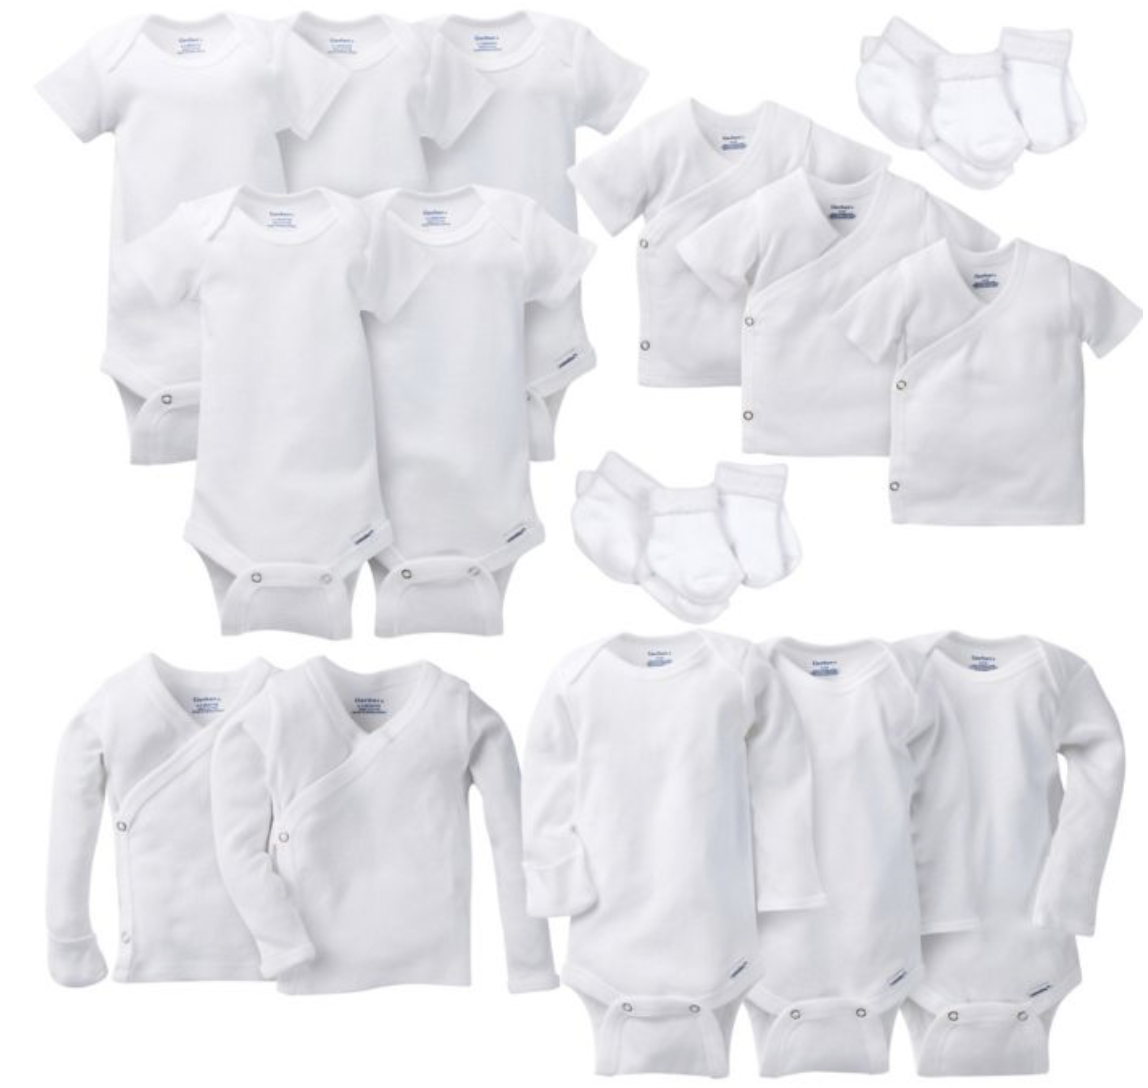 GERBER LAYETTE BASICS - I usually don't buy a lot of newborn, or 0-3 month clothes because both of my babies just lived in these all the time. The long sleeved ones have the built in mittens so they can't scratch themselves.